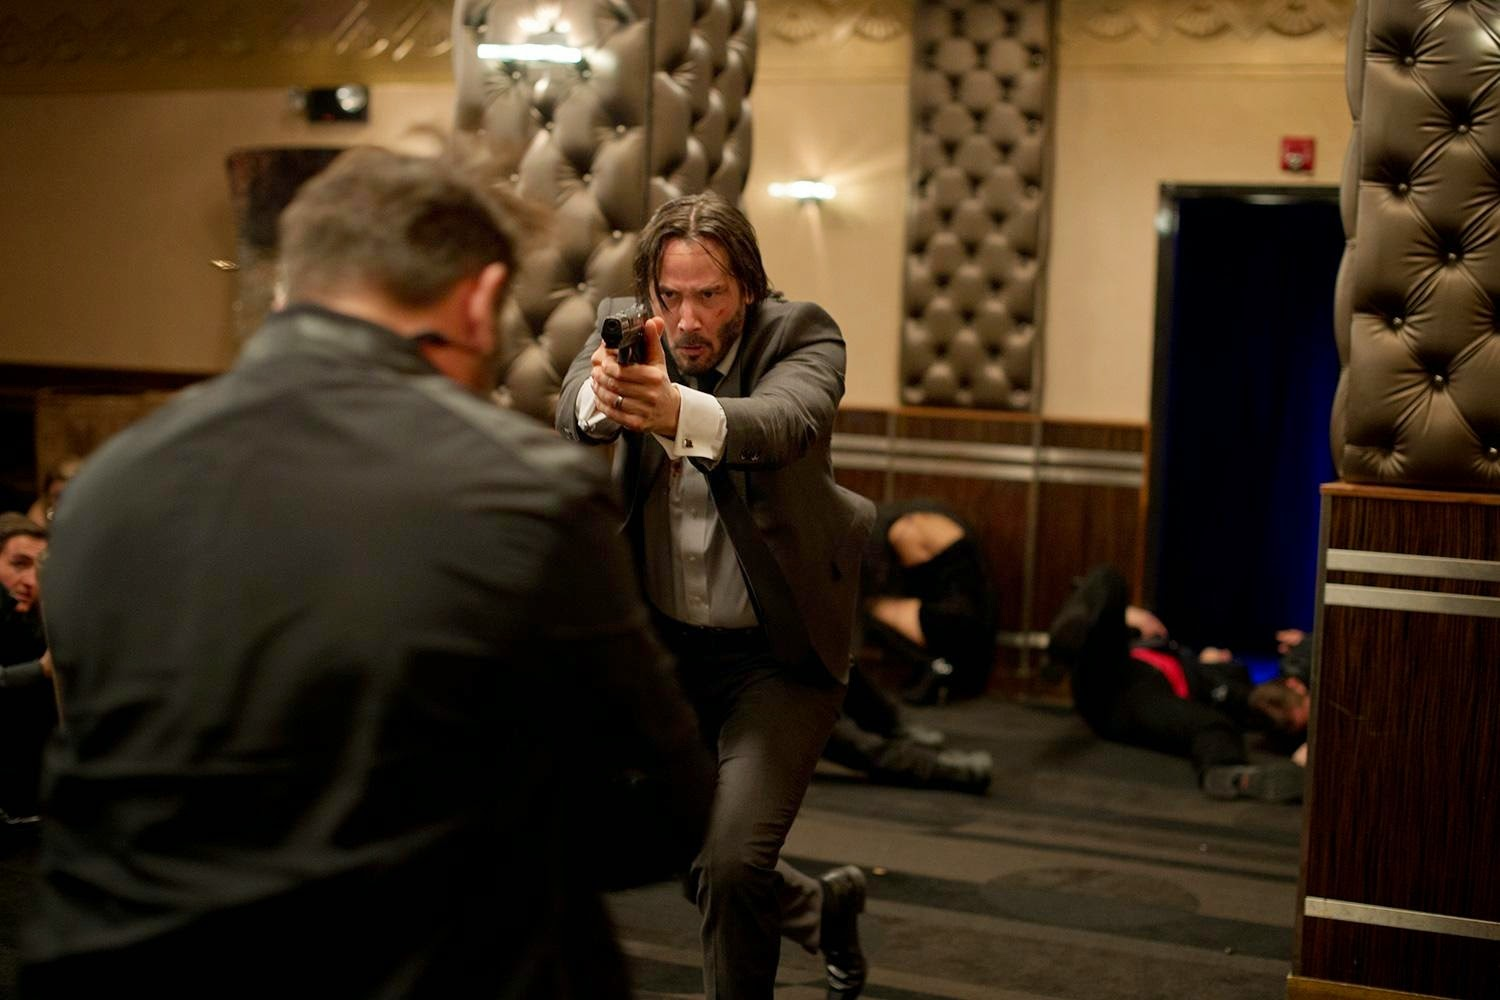 Keanu Reeves John Wick action movie